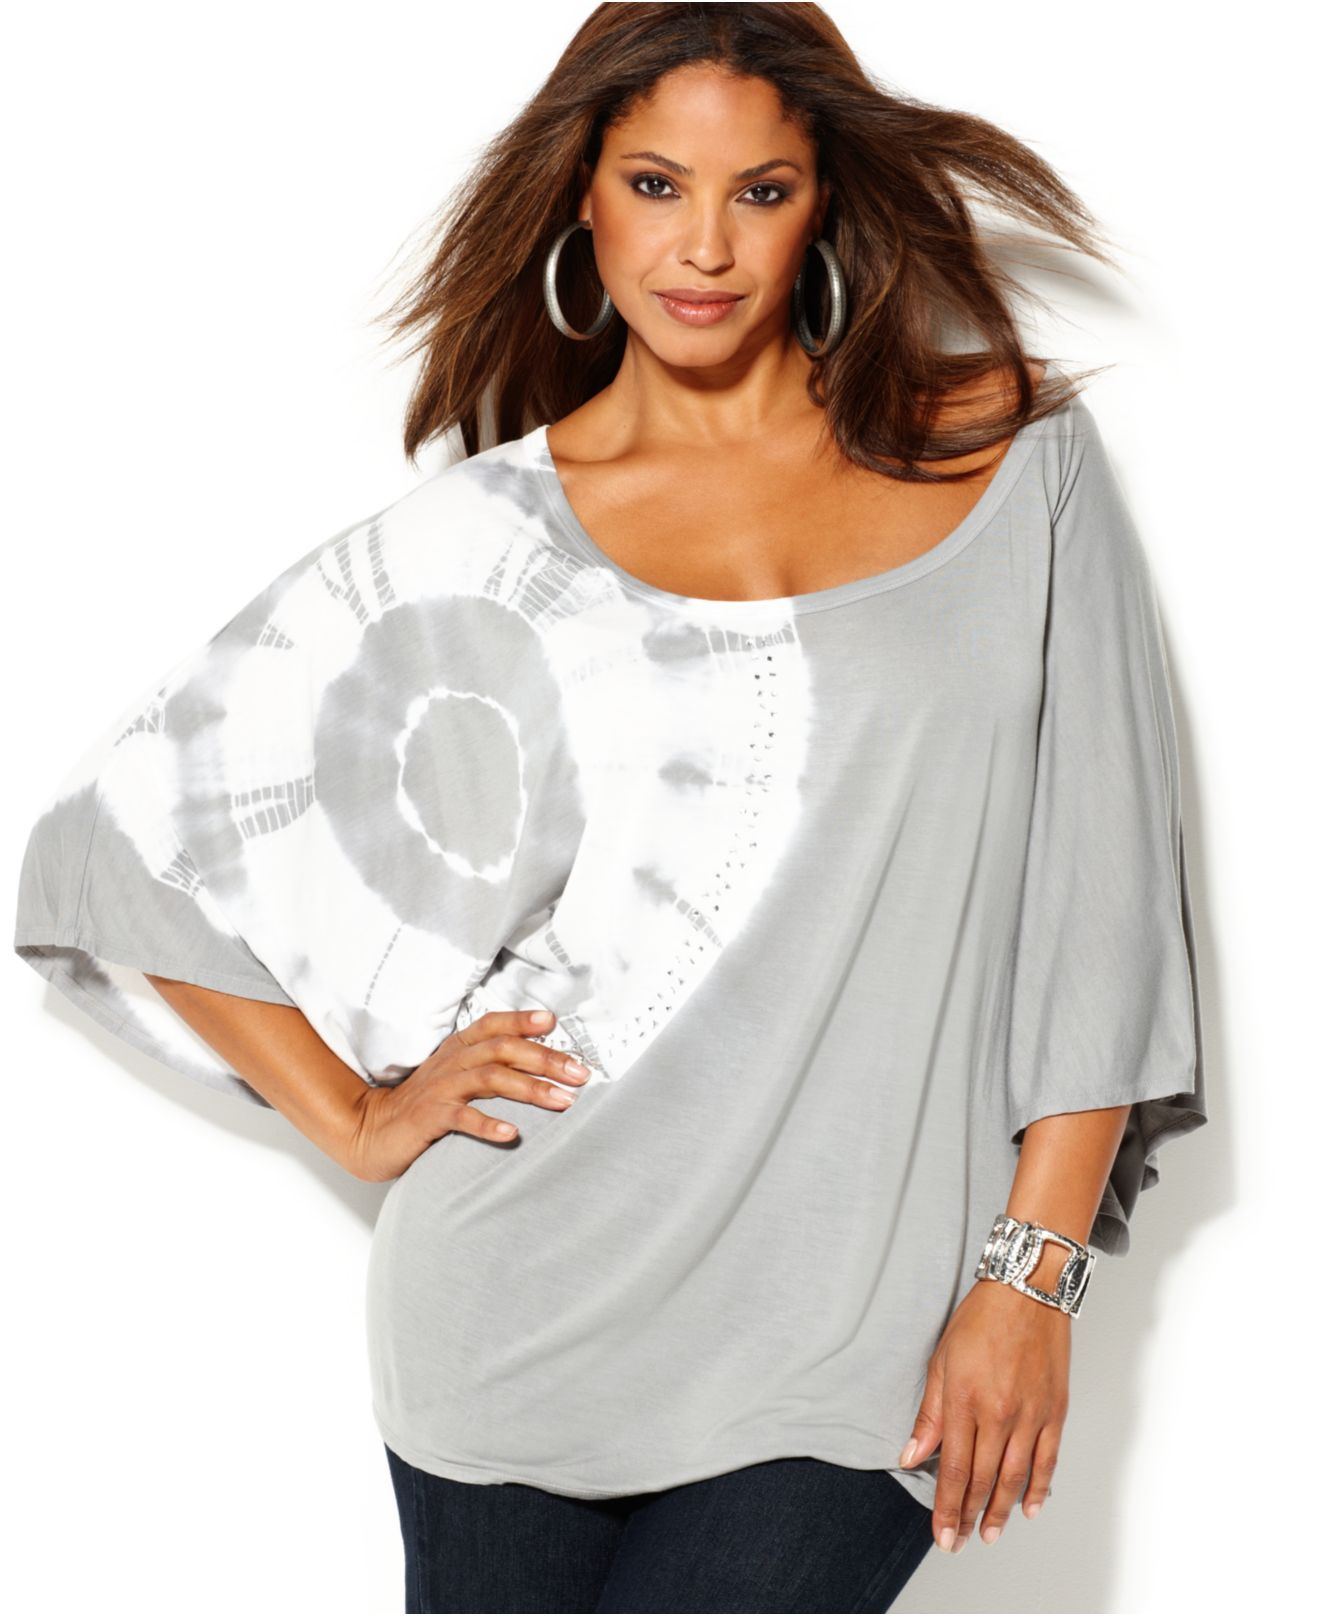 INC International Concepts Plus Size Top, Butterfly Sleeve